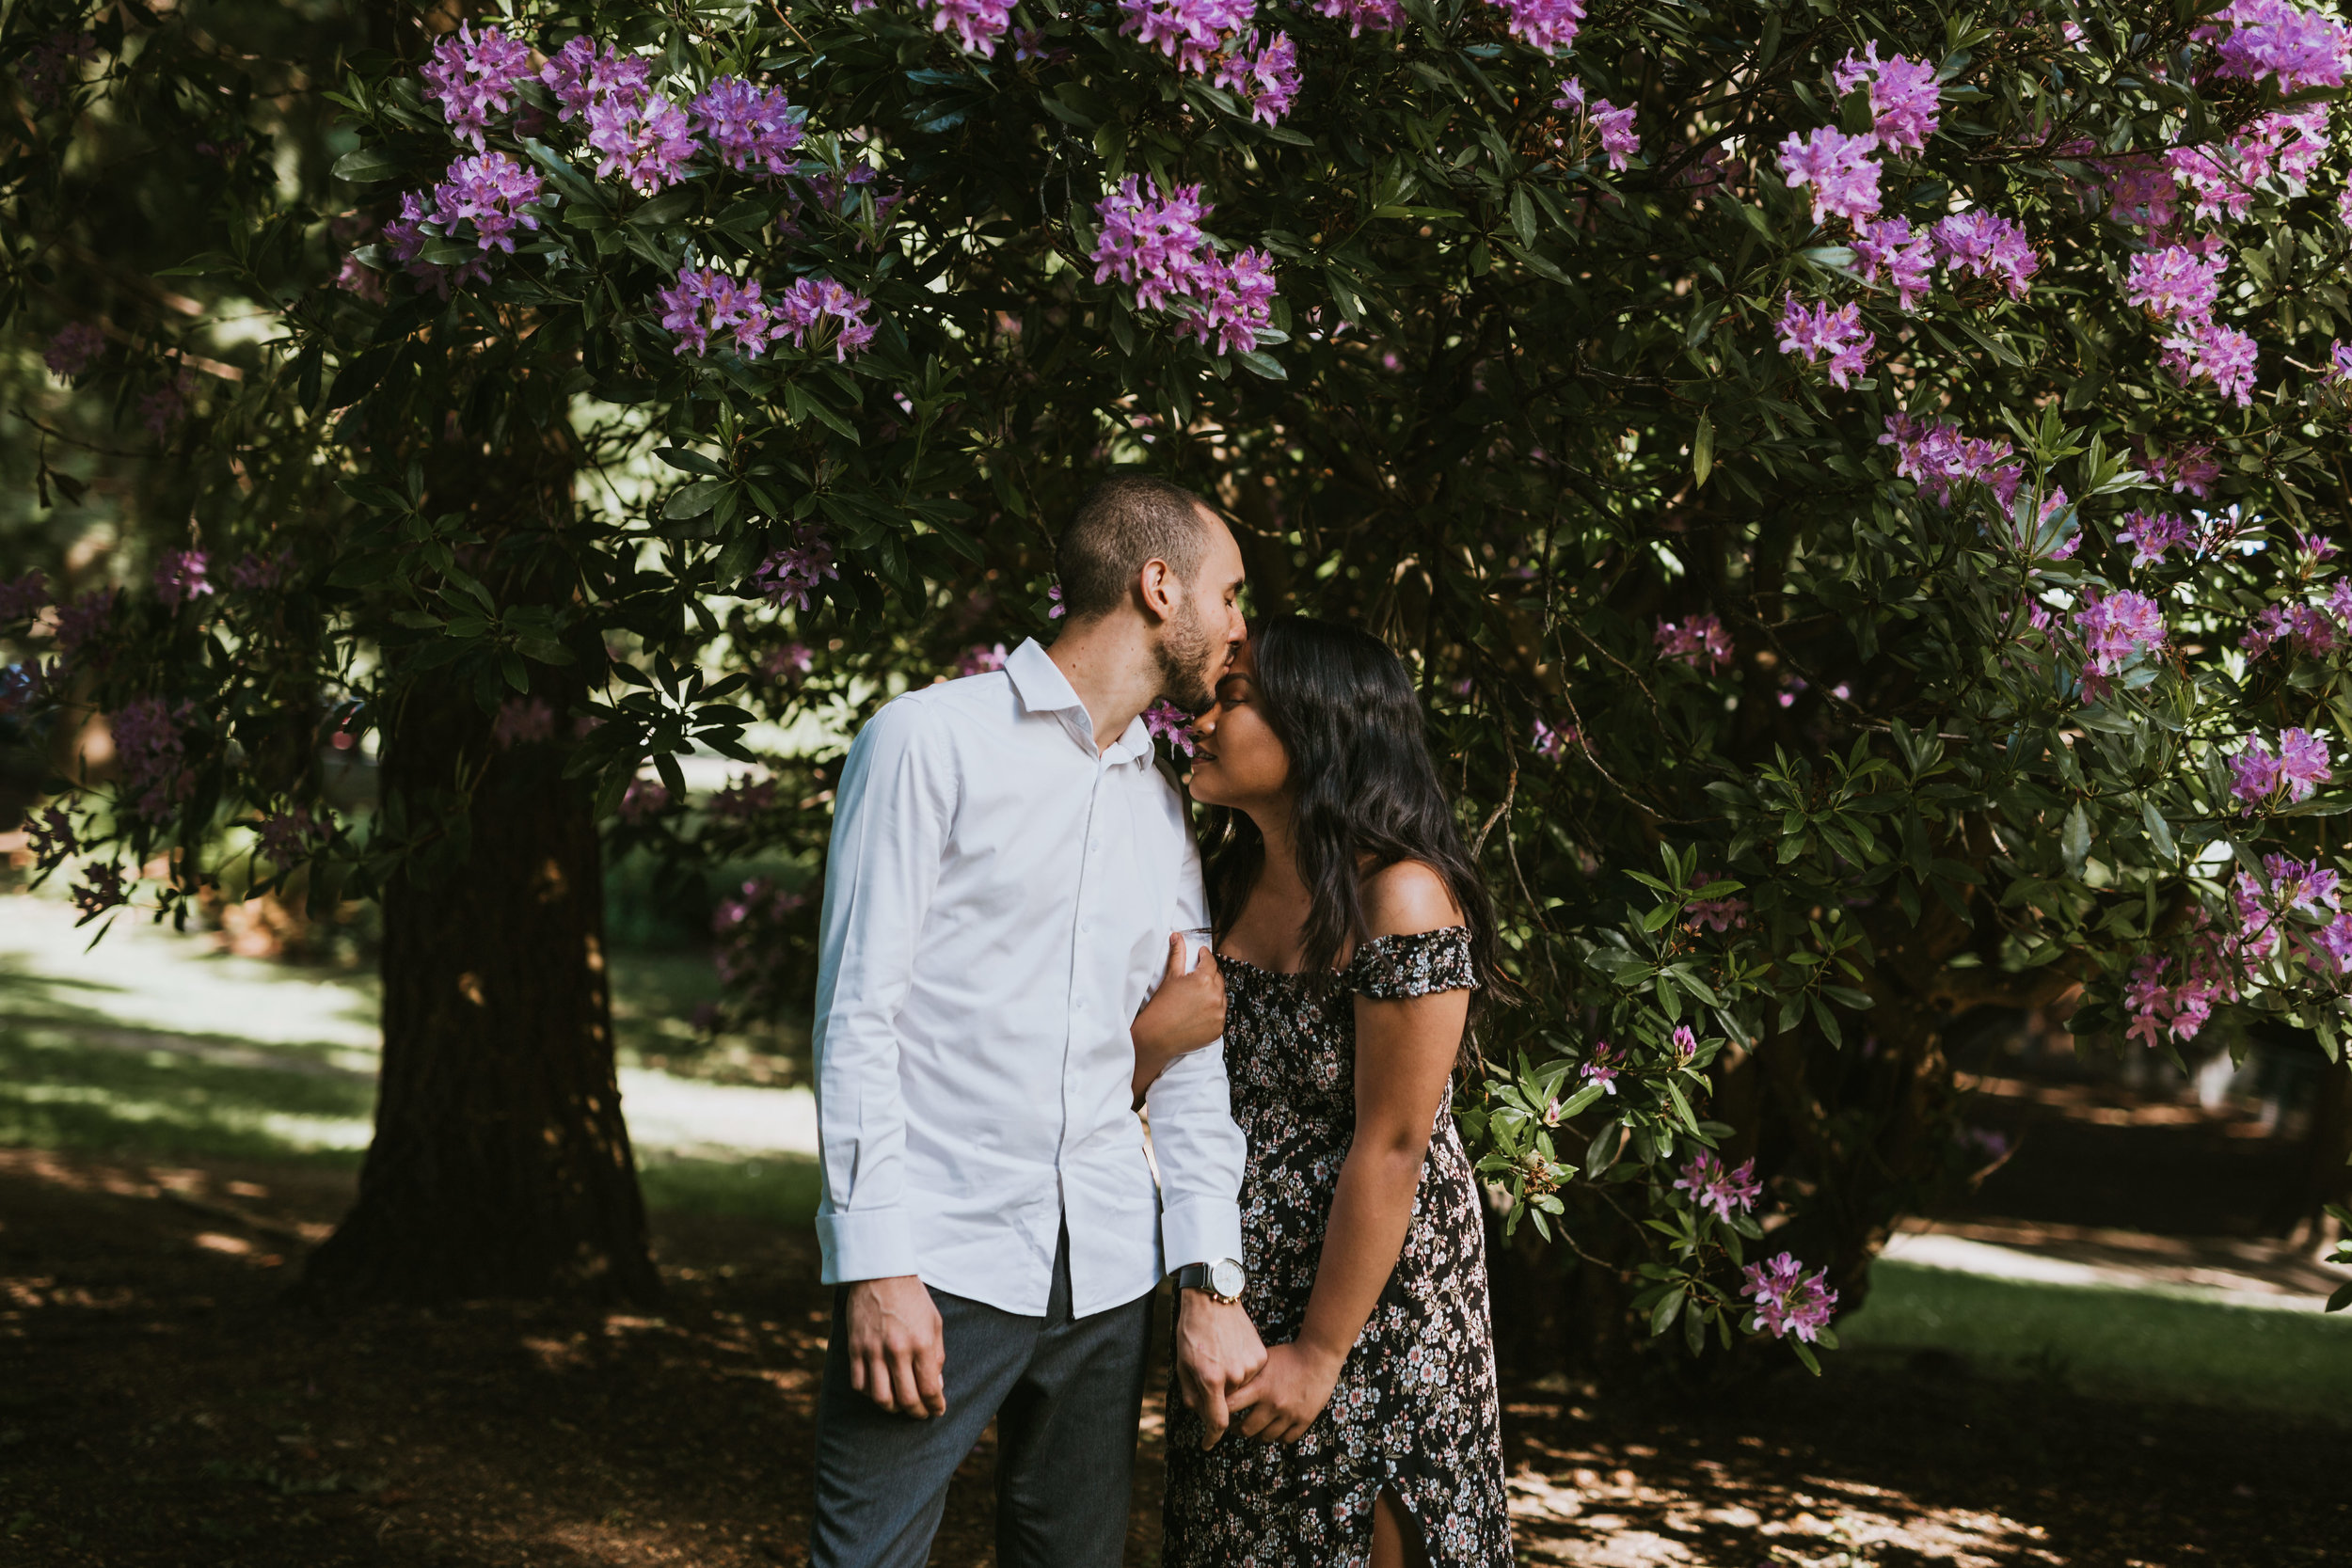 oliver-rabanes-vancouver-surrey-whytecliff-park-proposal-engagement-photography-02.JPG